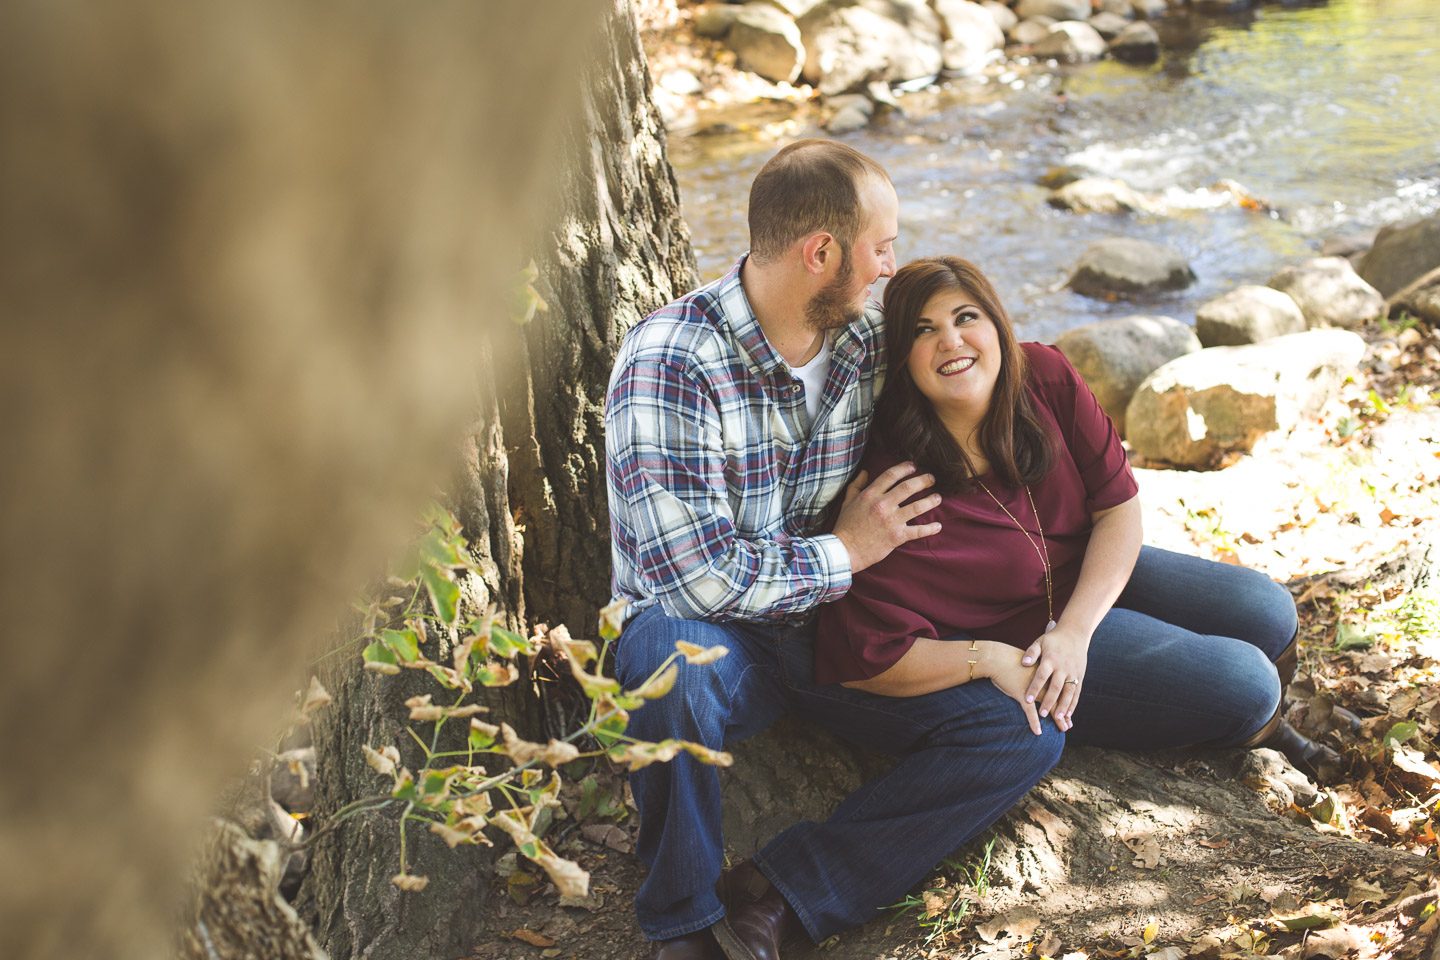 Engagement-Northville-Mill-Race-Village-David-Danielle-Sitting-Near-Creek-River-Tree